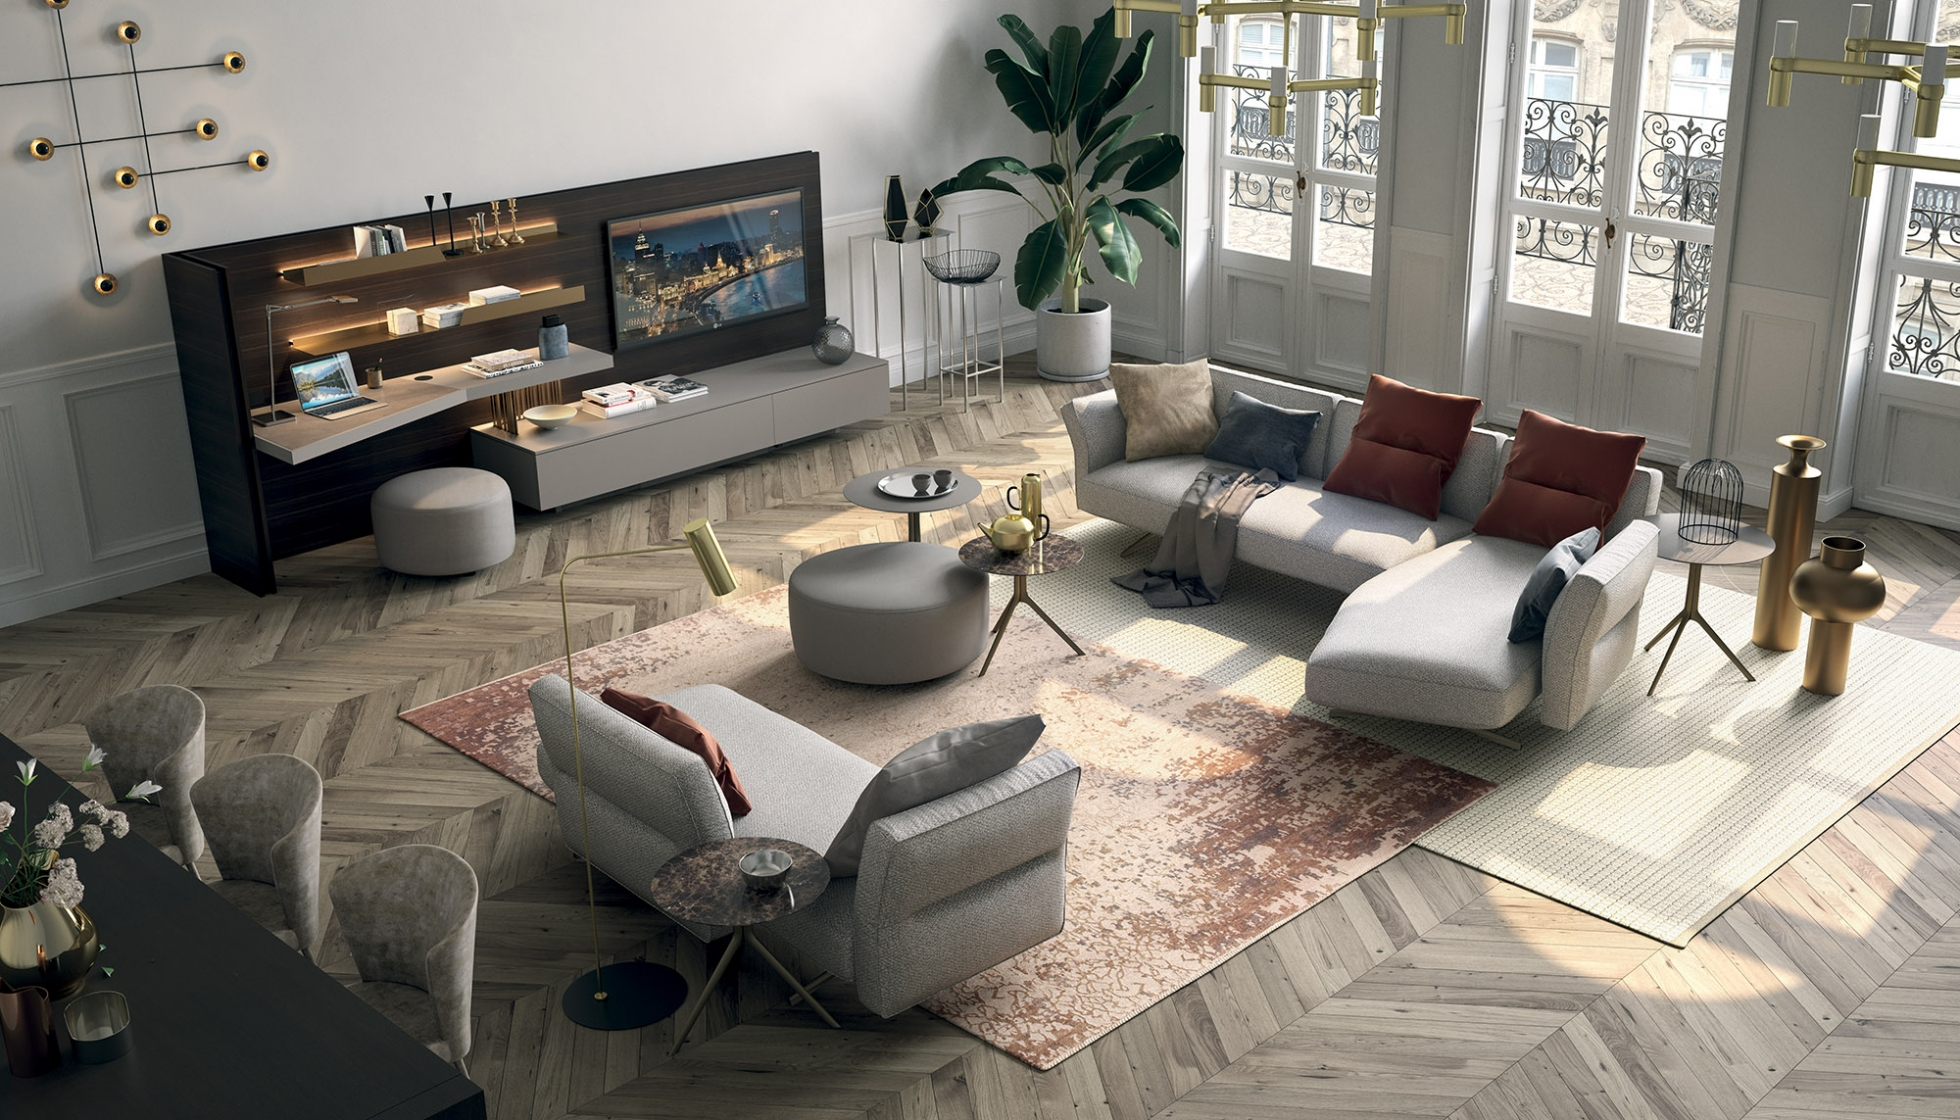 The largest contemporary furniture display in buckinghamshire